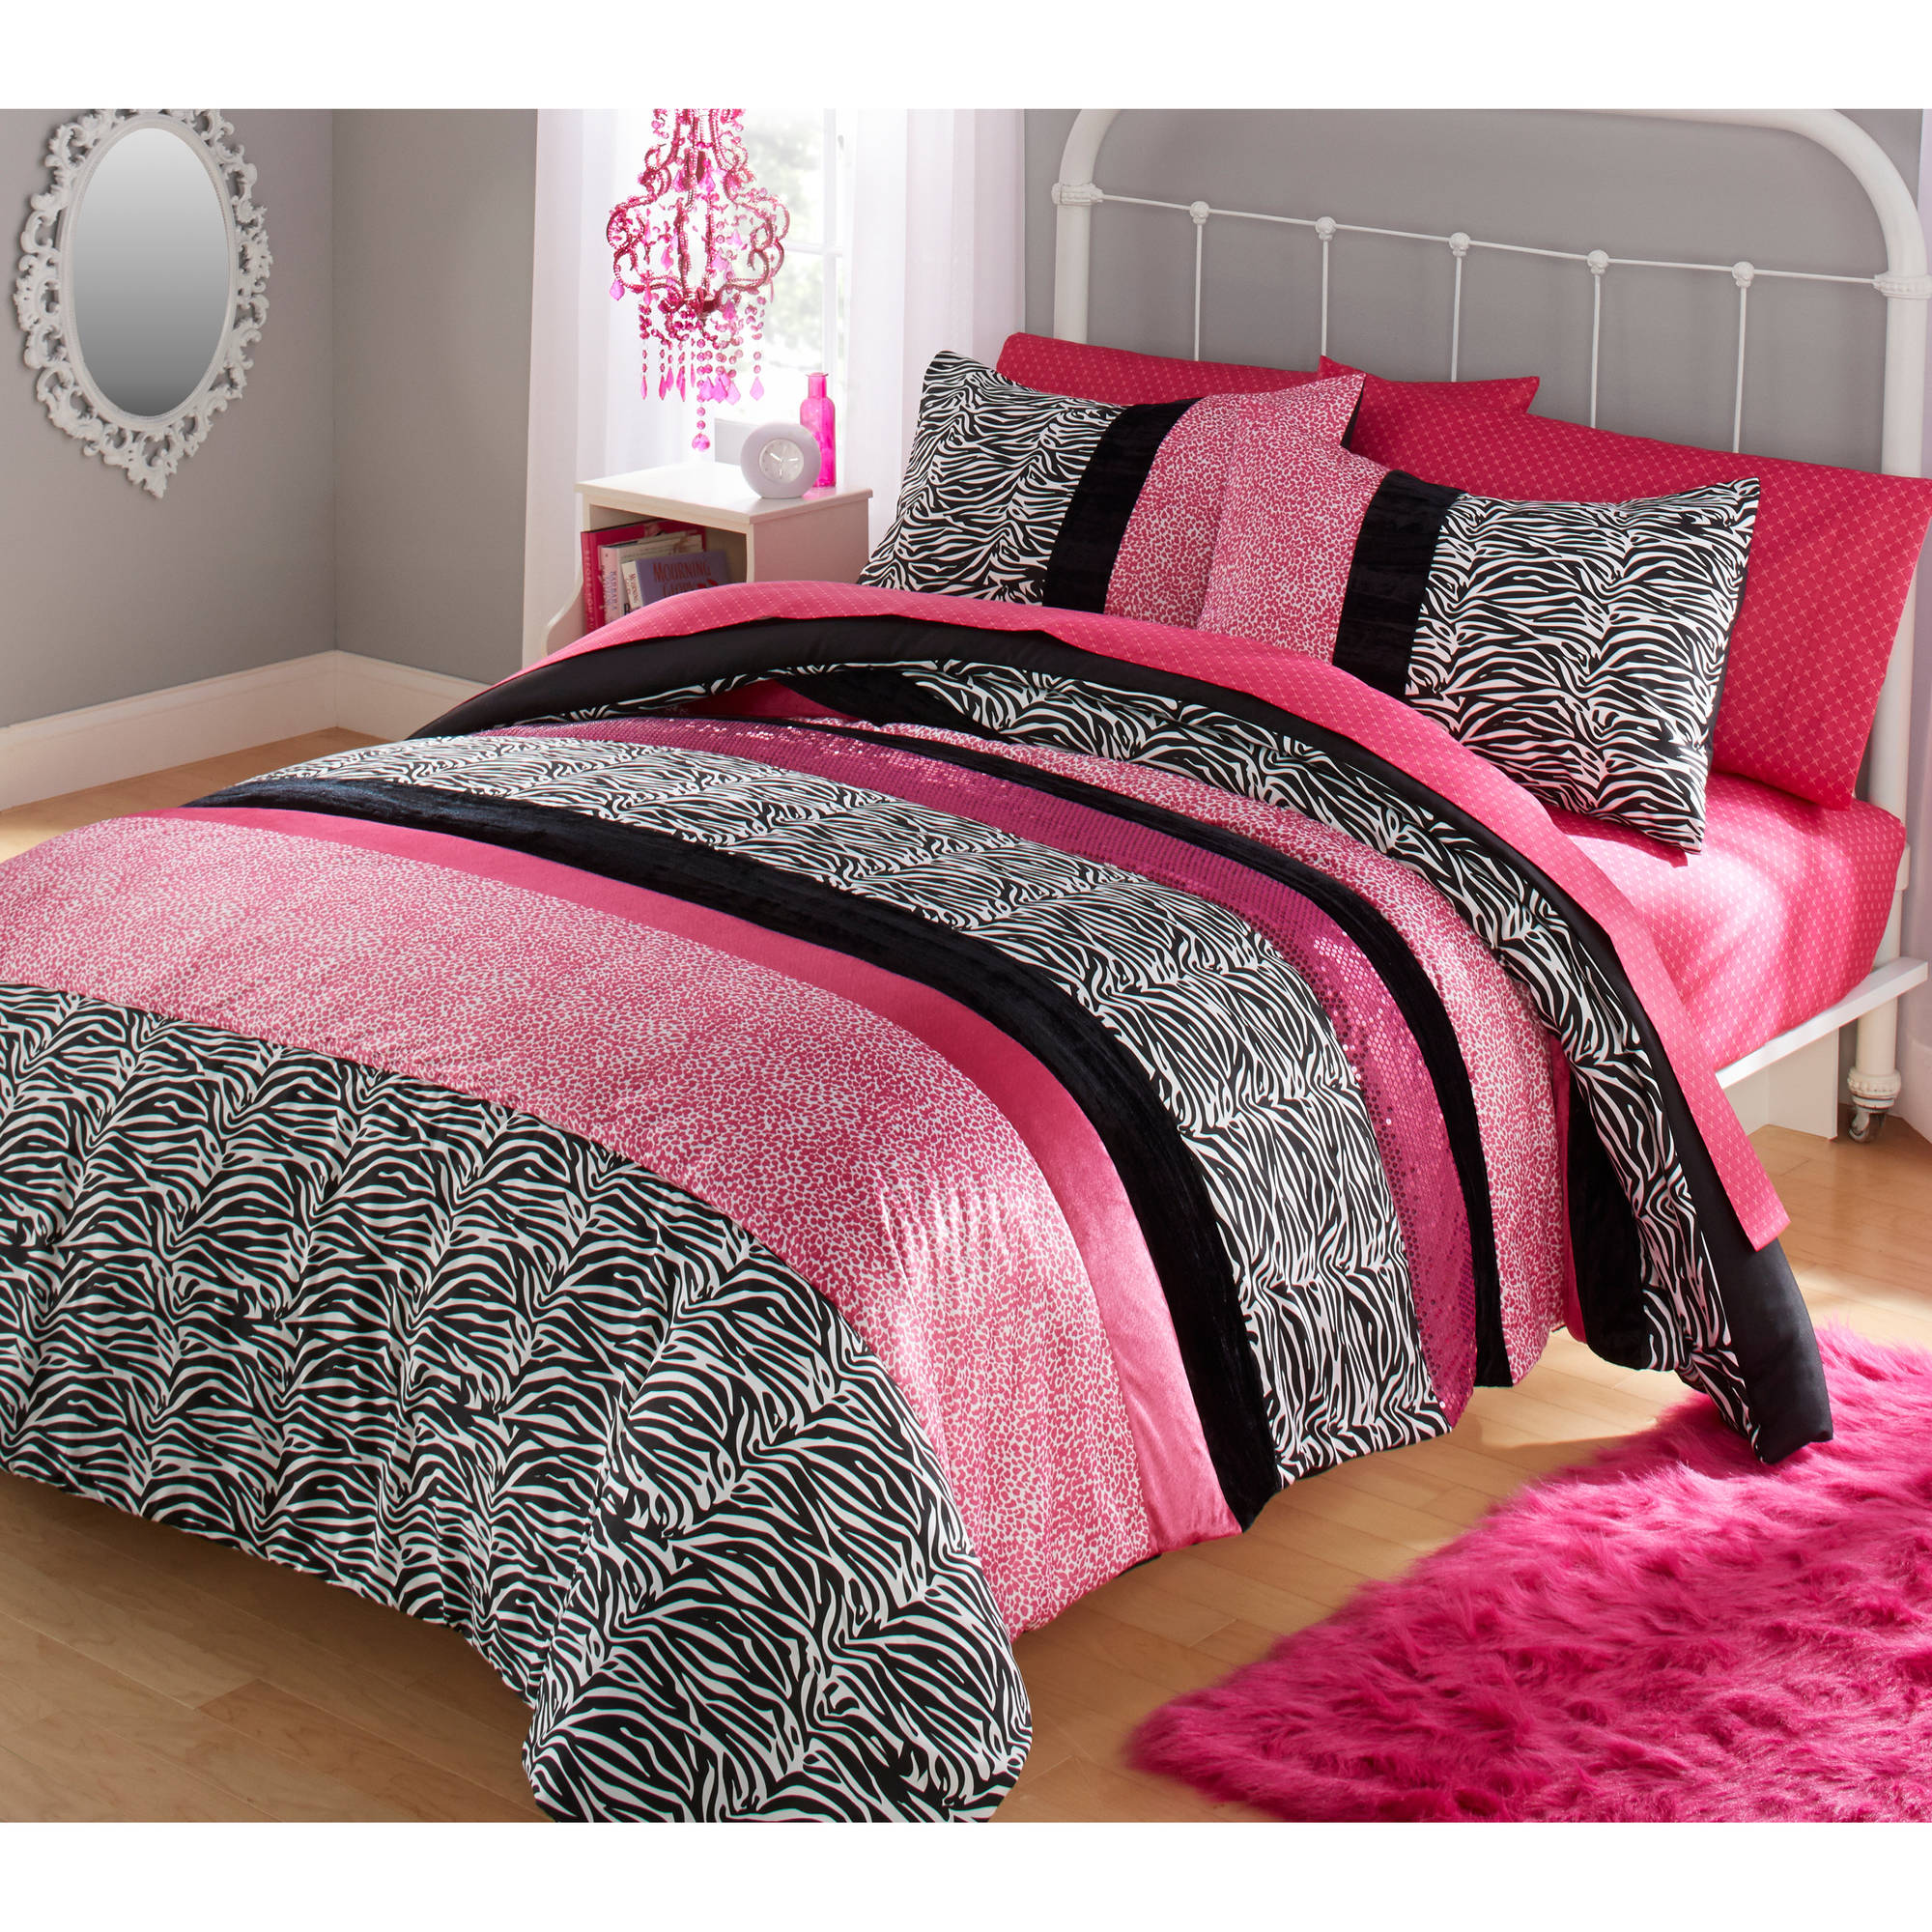 comforter in bed pin less jared home set king bag bedsqueen a products chic red queen bedscomforter for piece setsbeddingblock